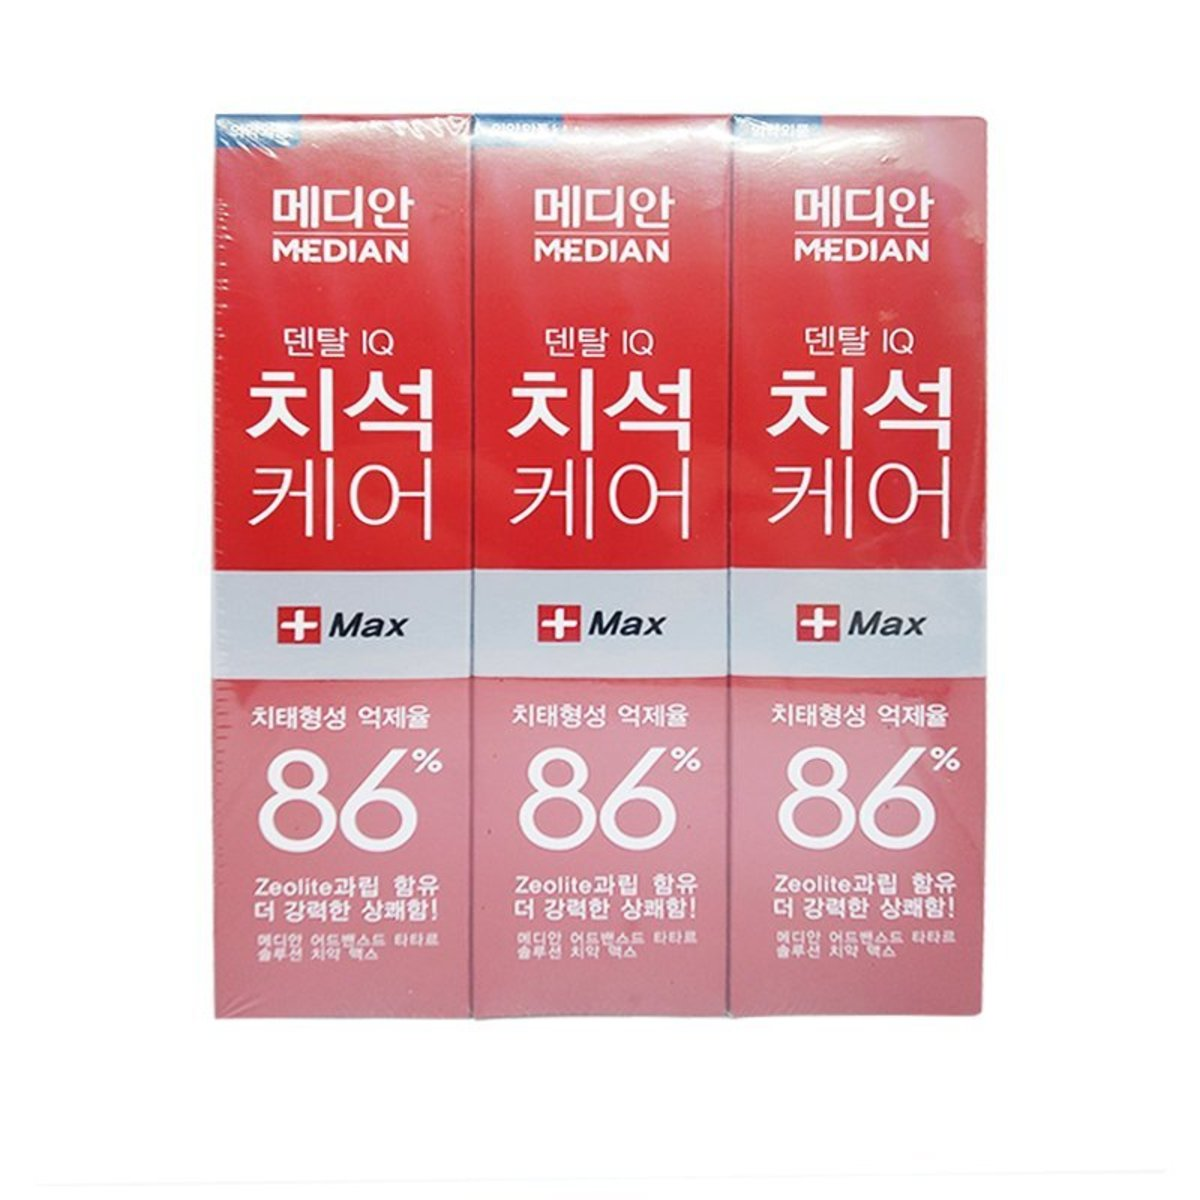 Median 93% Dental IQ Toothpaste - Red (3 pcs)[Parallel Import]